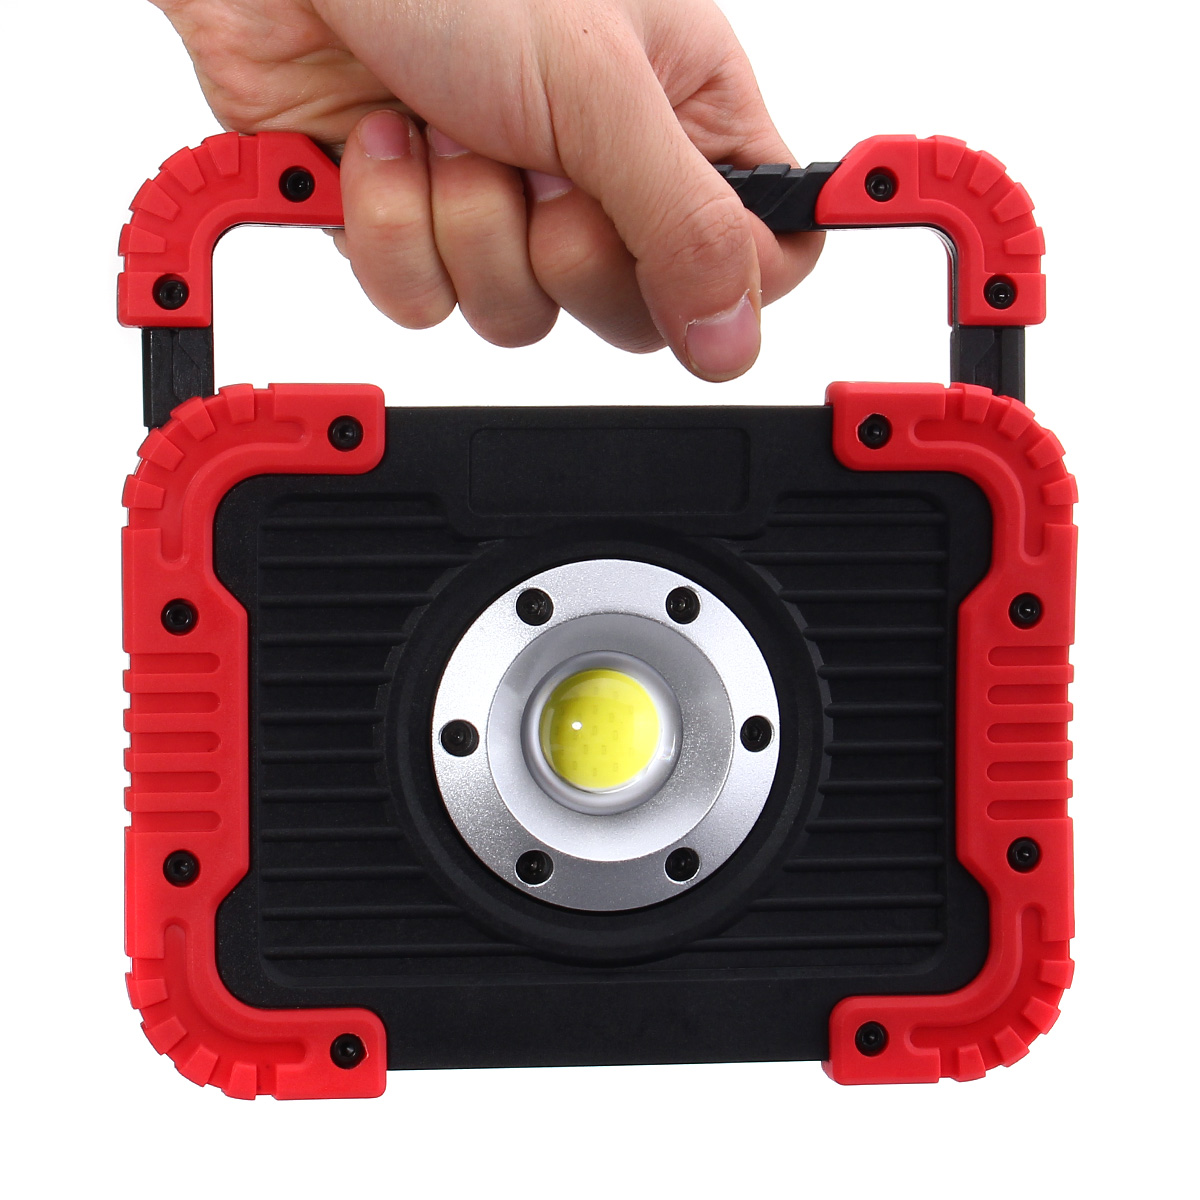 Mising 30W COB LED Work Light Floodlight Flashlight Camping Spotlight Searchlight Built-in Rechargeable Li-Batteries With USB led lamp usb rechargeable built in battery cob xpe led light with magnet portable flashlight outdoor camping working torch lamps